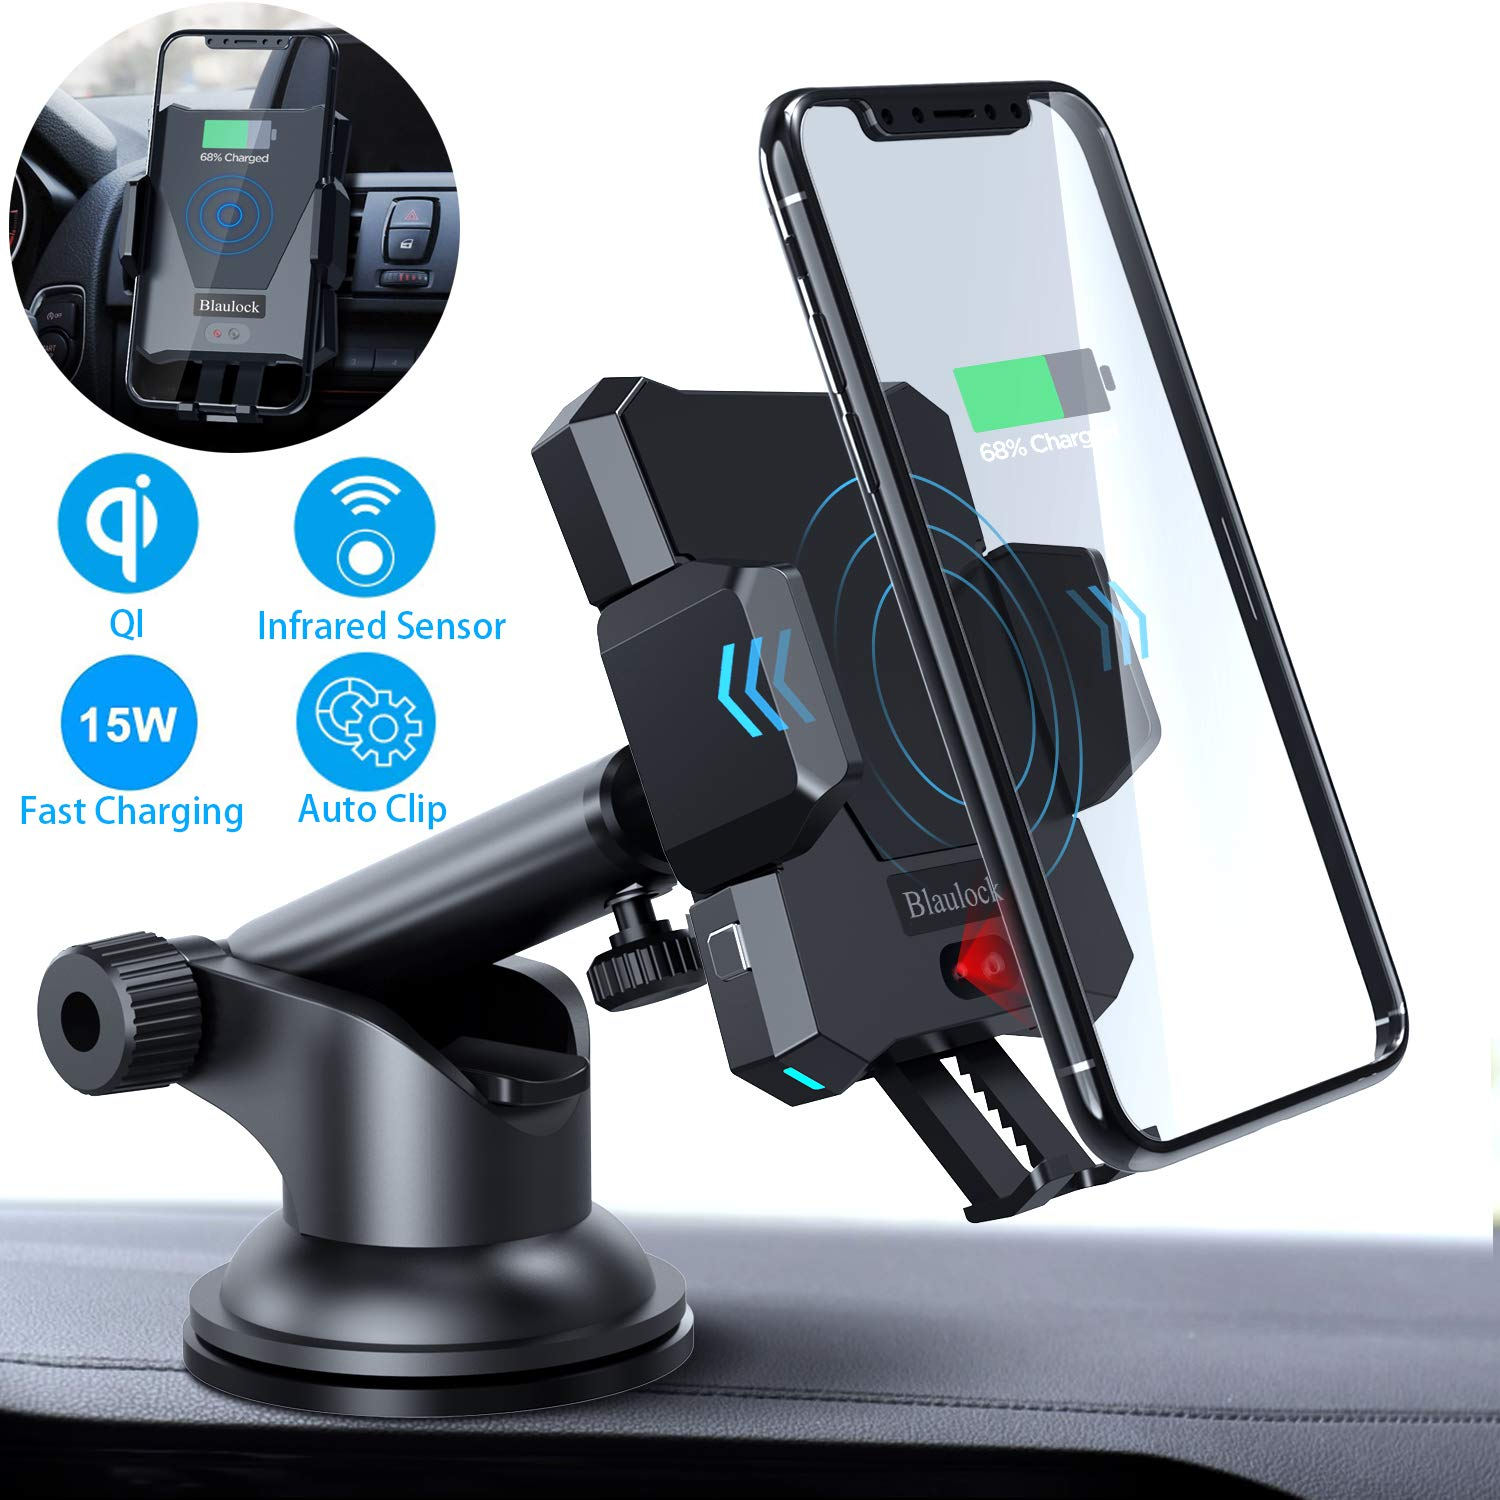 Smart Wireless Car Charger Mount 15W,Blaulock Infrared Sensing Auto-Clamp QI Fast Charging Phone Holder, Windshield Dash Air Vent Wireless Charger for iPhone 11/Xs/XR/8 Samsung S10/S10+/S9/S9+/S8 etc. by Blaulock